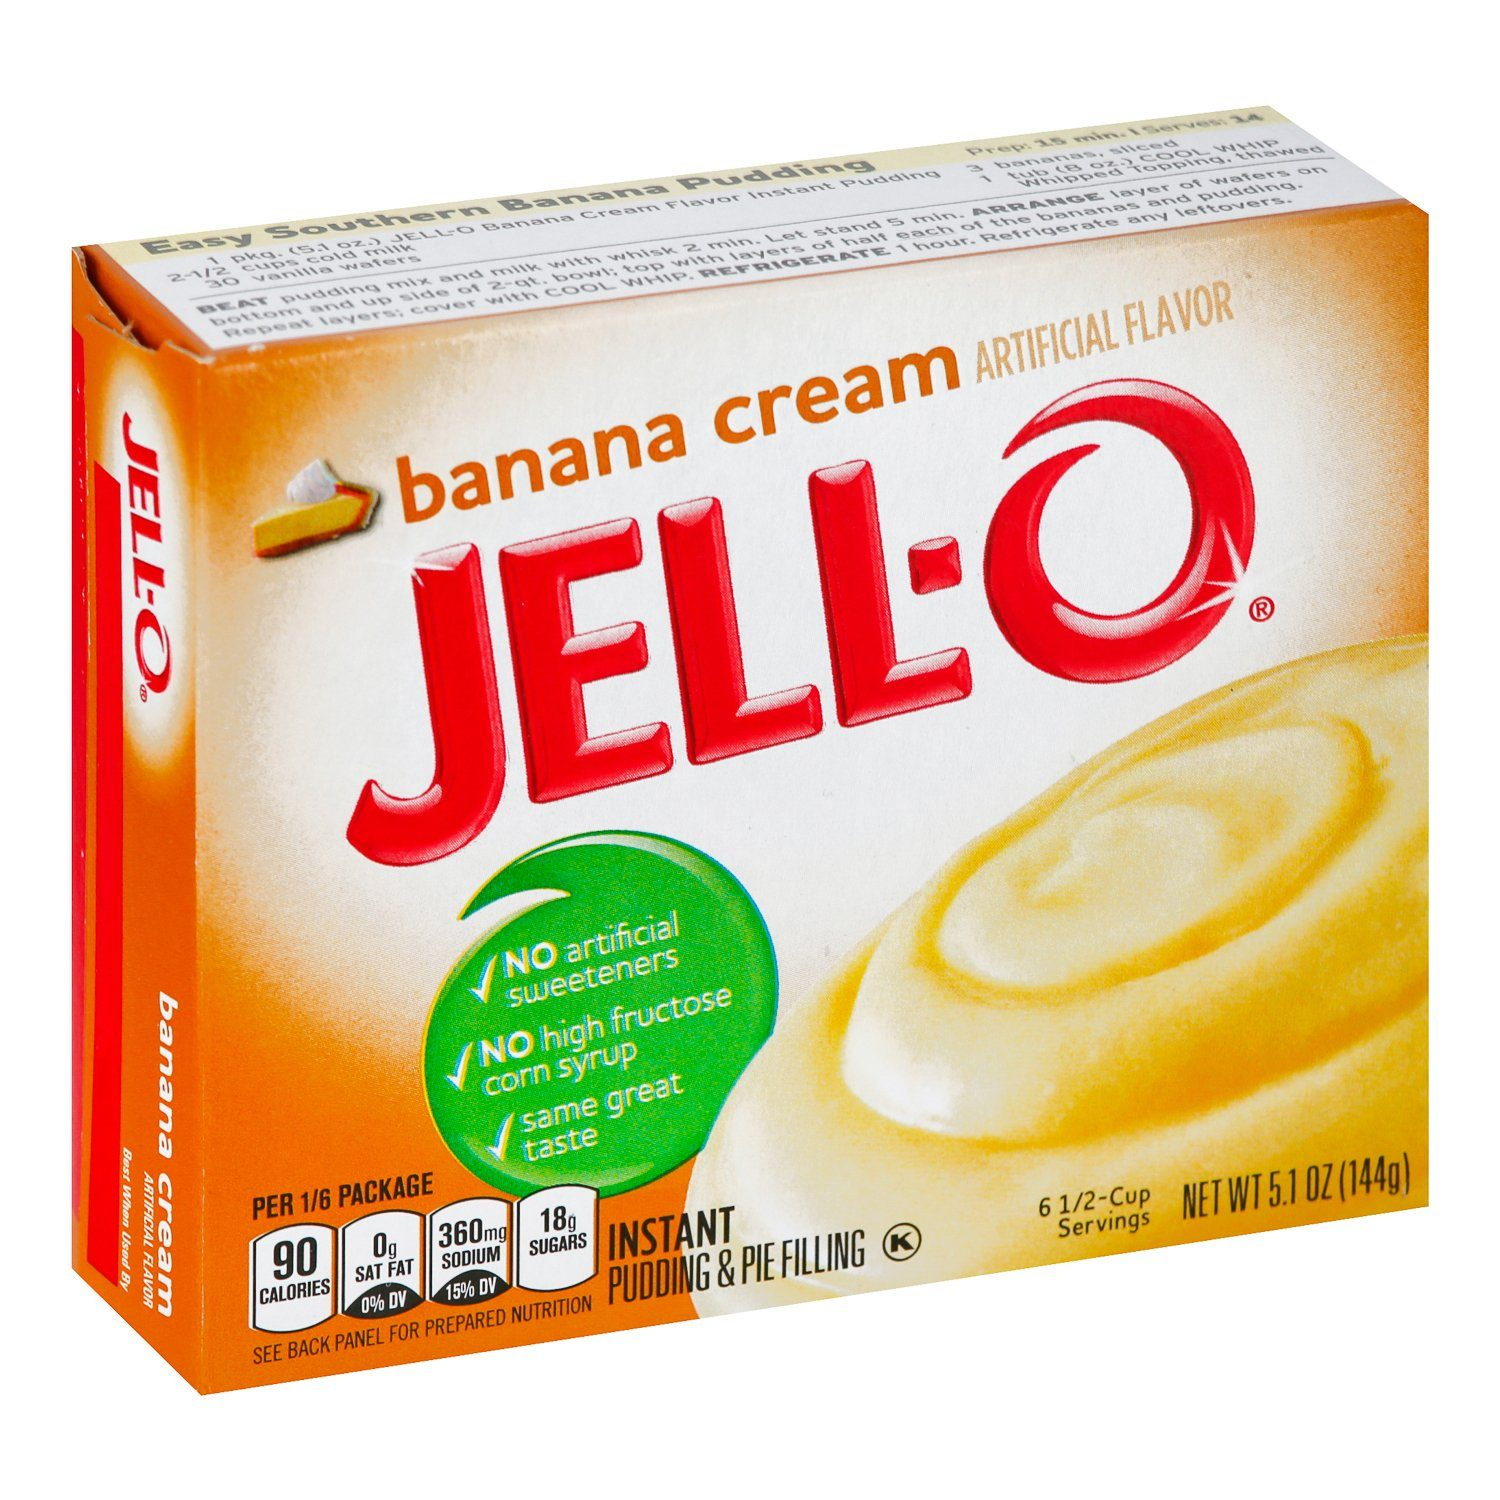 Jell-O Instant Pudding & Pie Filling Mixes Jell-O Banana Cream 5.1 Ounce